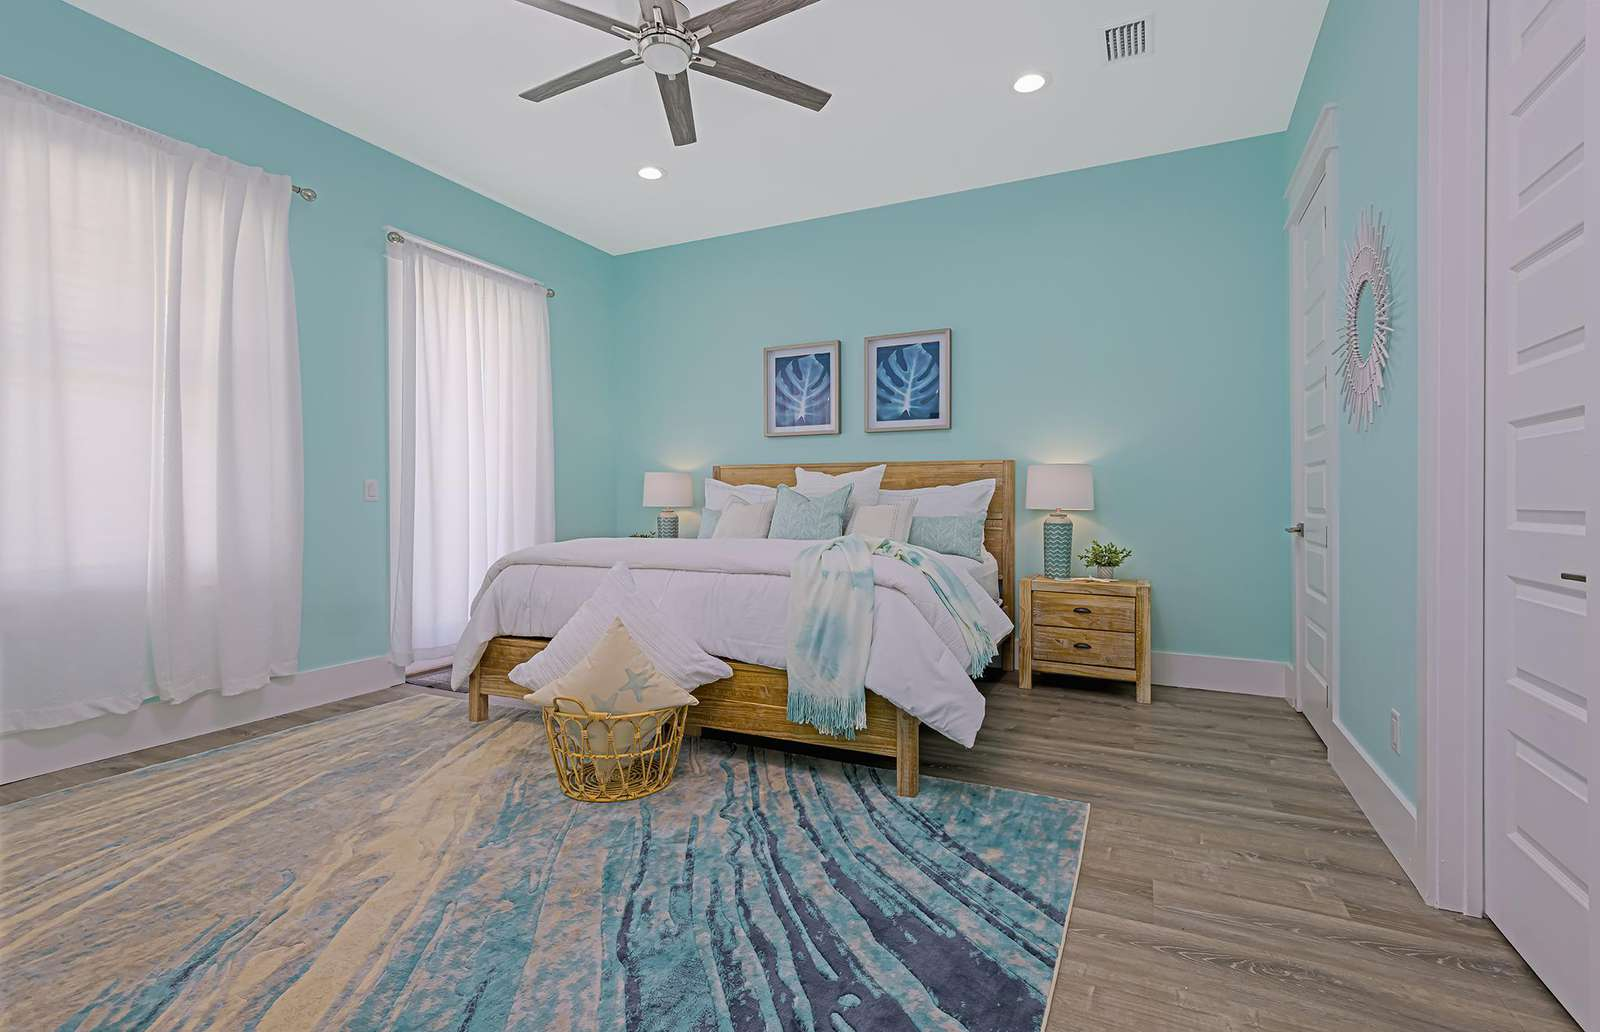 The largest of the 4 bedrooms with a king bed!